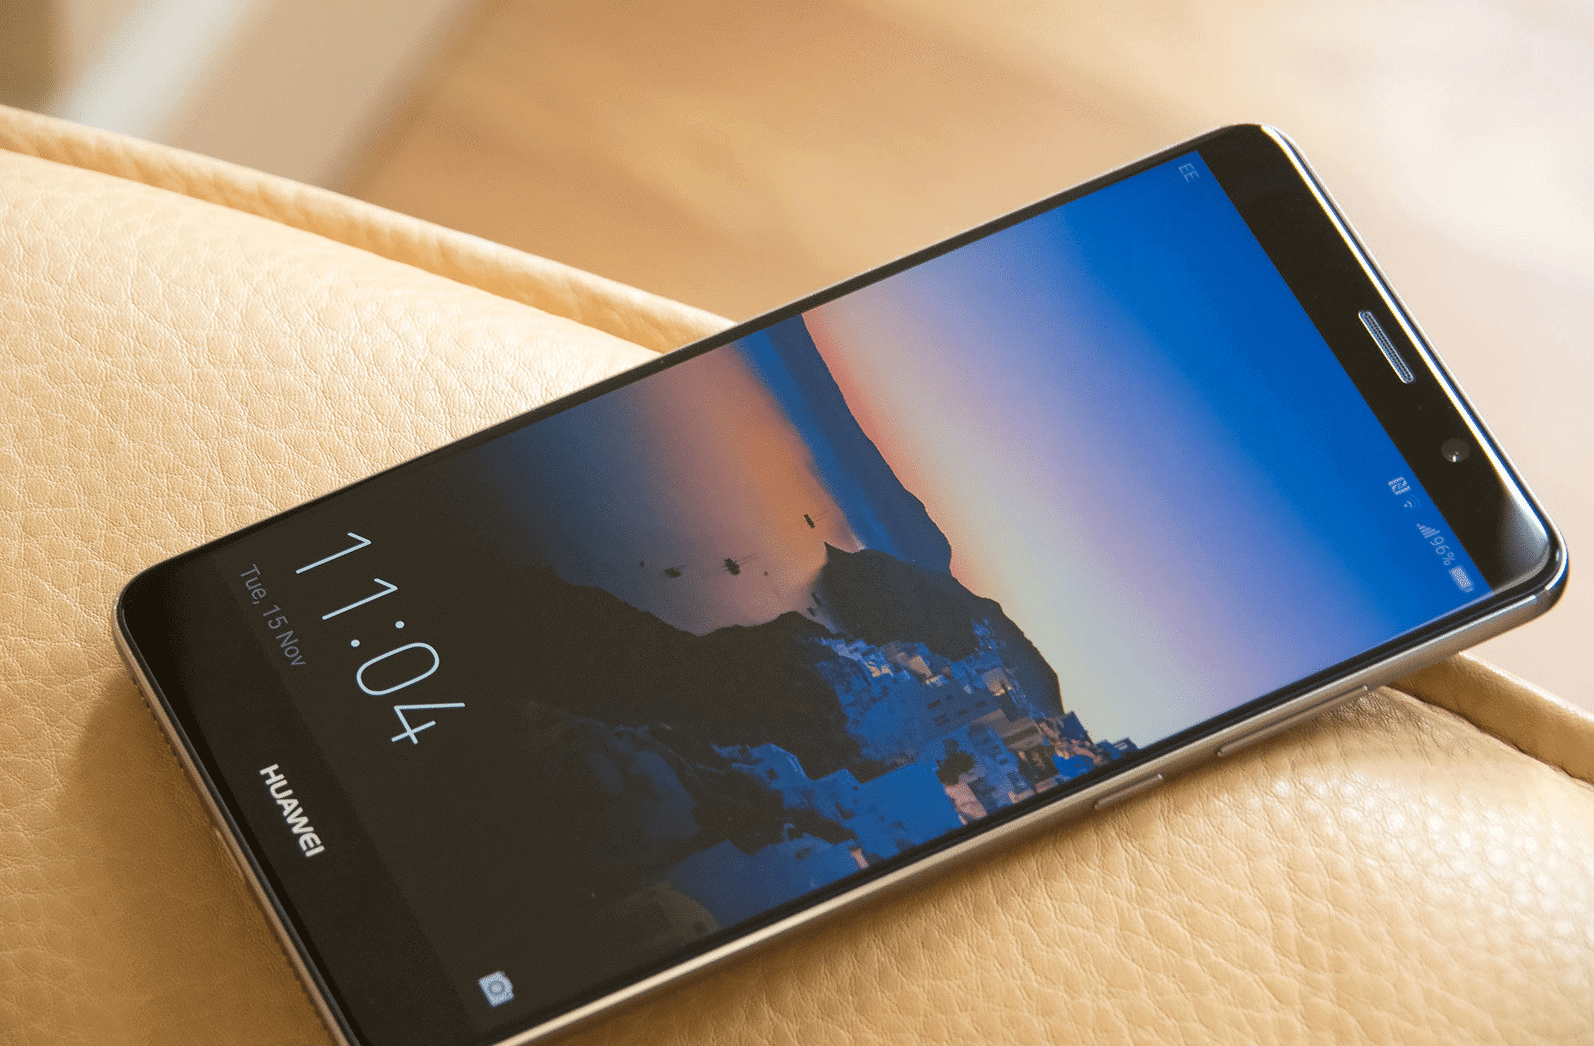 Huawei Mate 9 updated on Android 8.0 Oreo official update